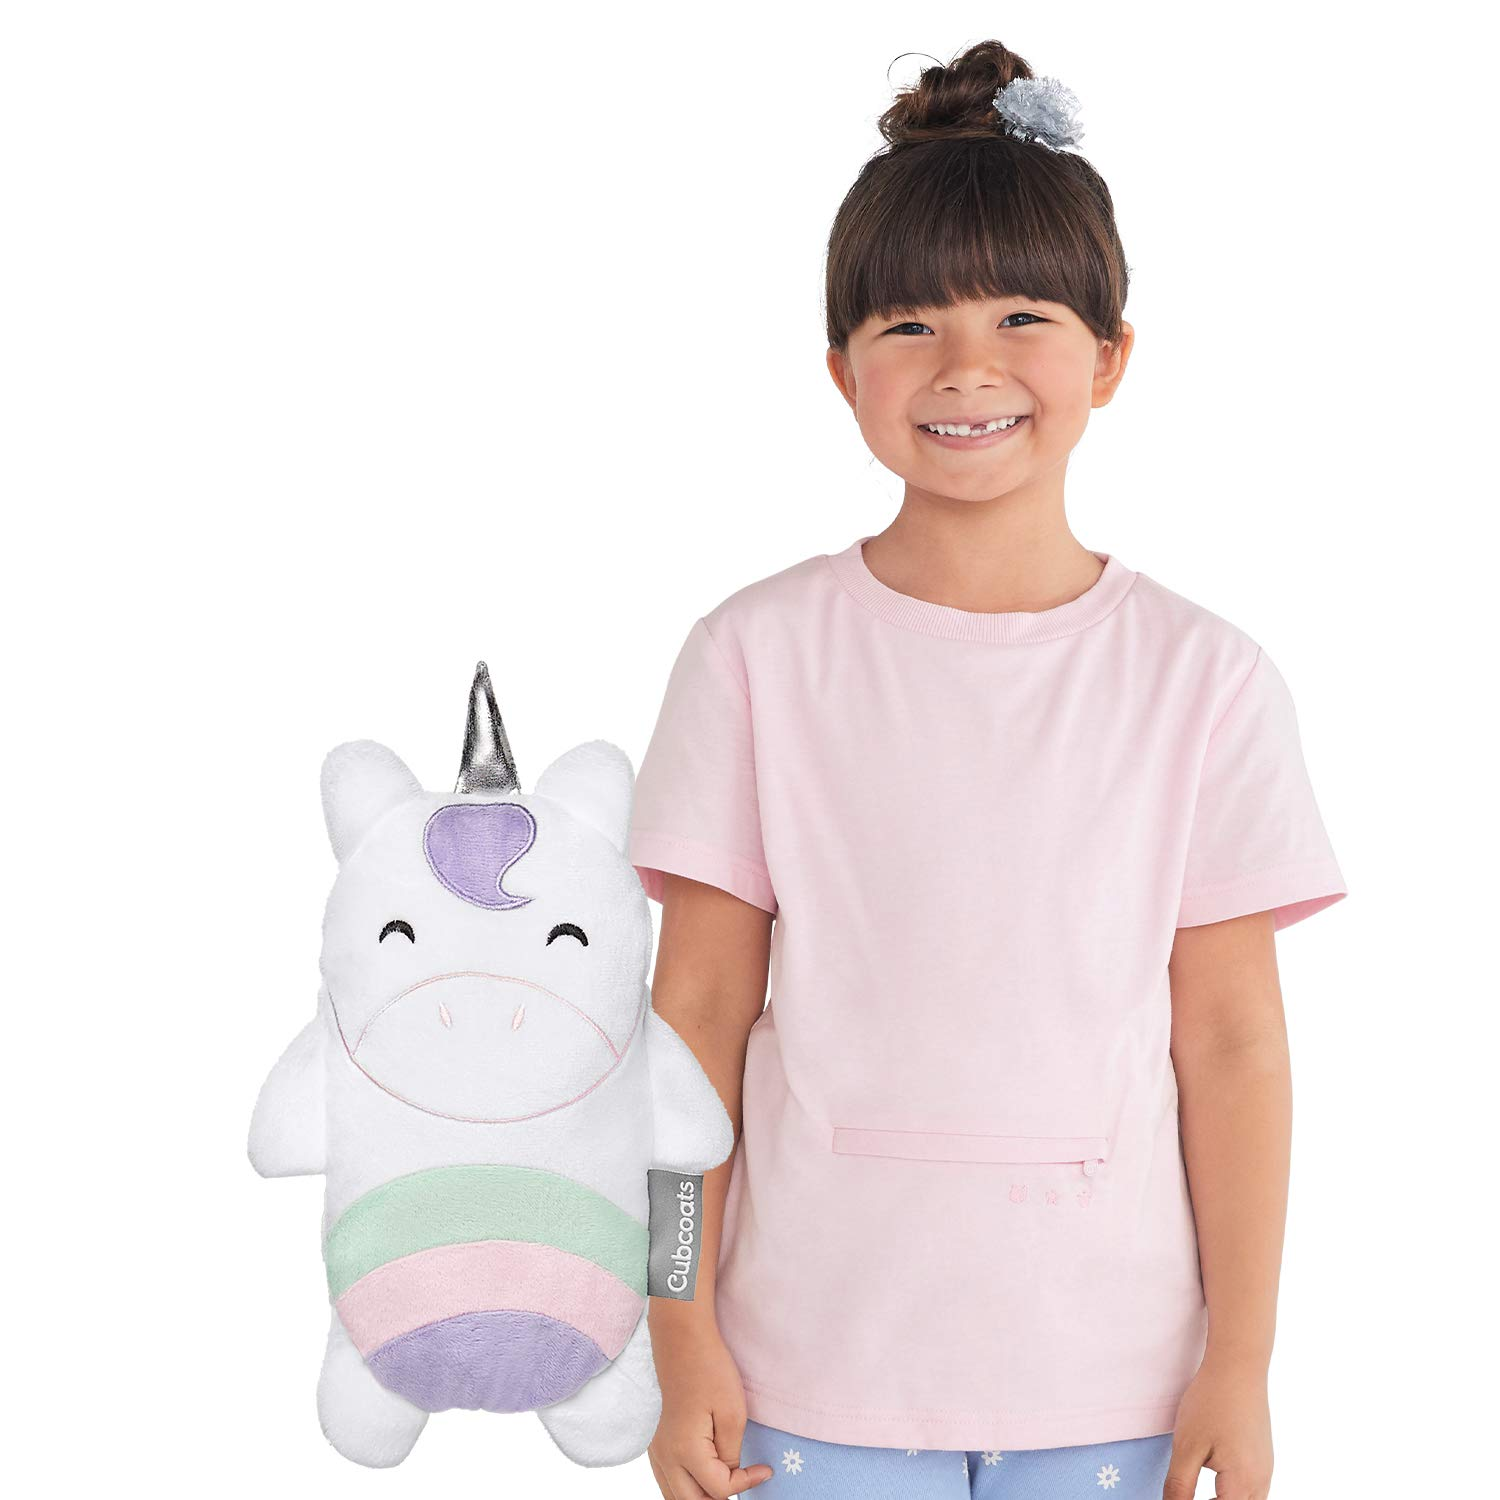 Cubcoats Uki The Unicorn 2-in-1 Transforming Tee T-Shirt and Soft Plushie